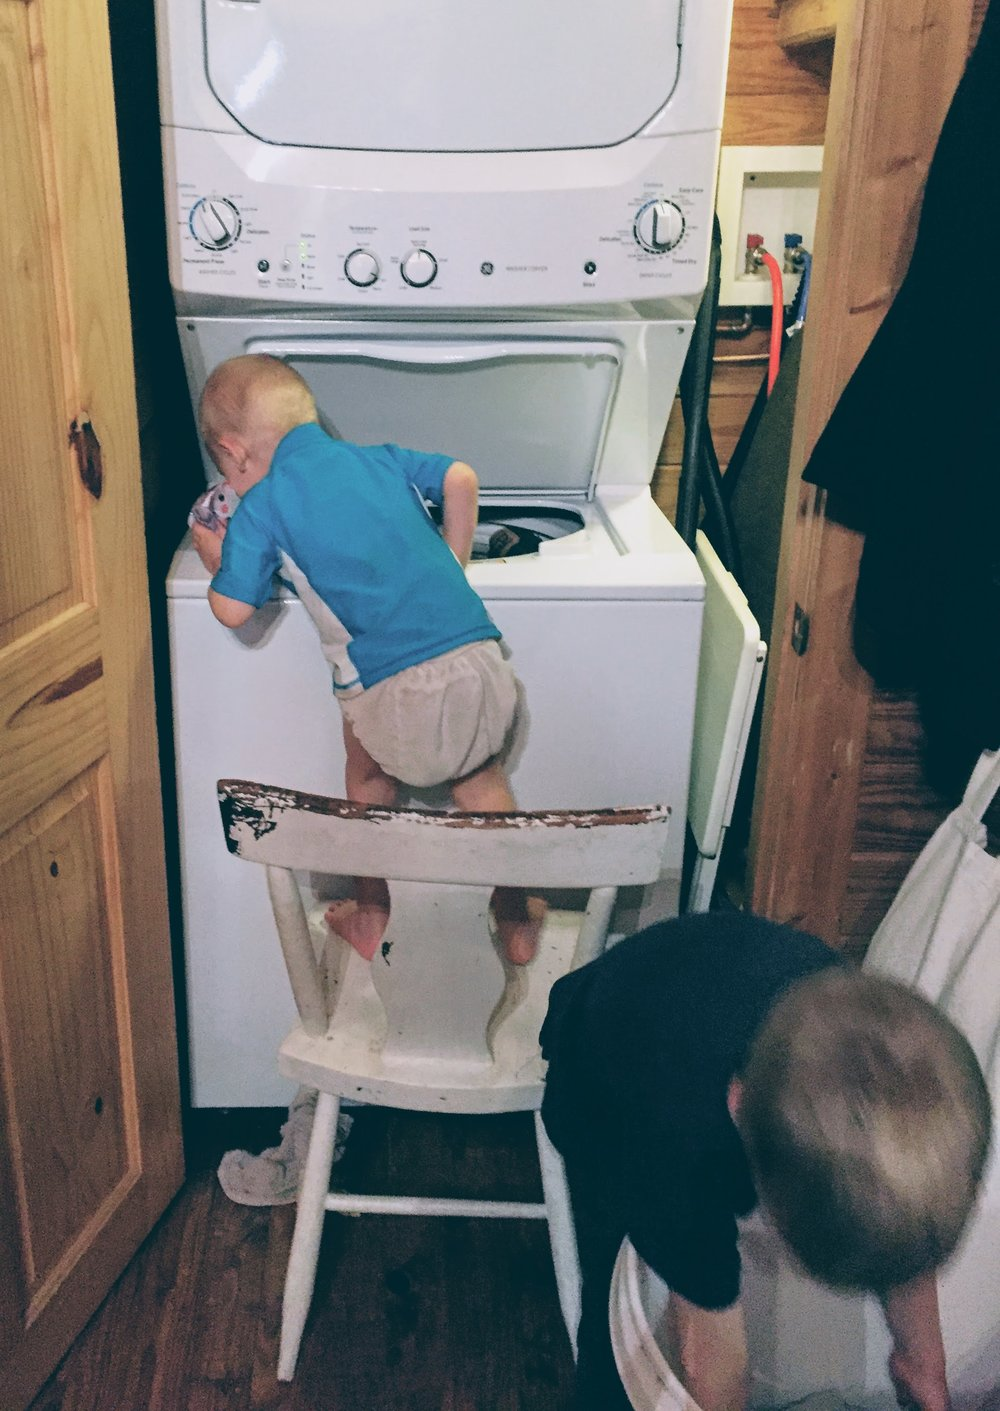 With the laundry close by, the younger children can even help!